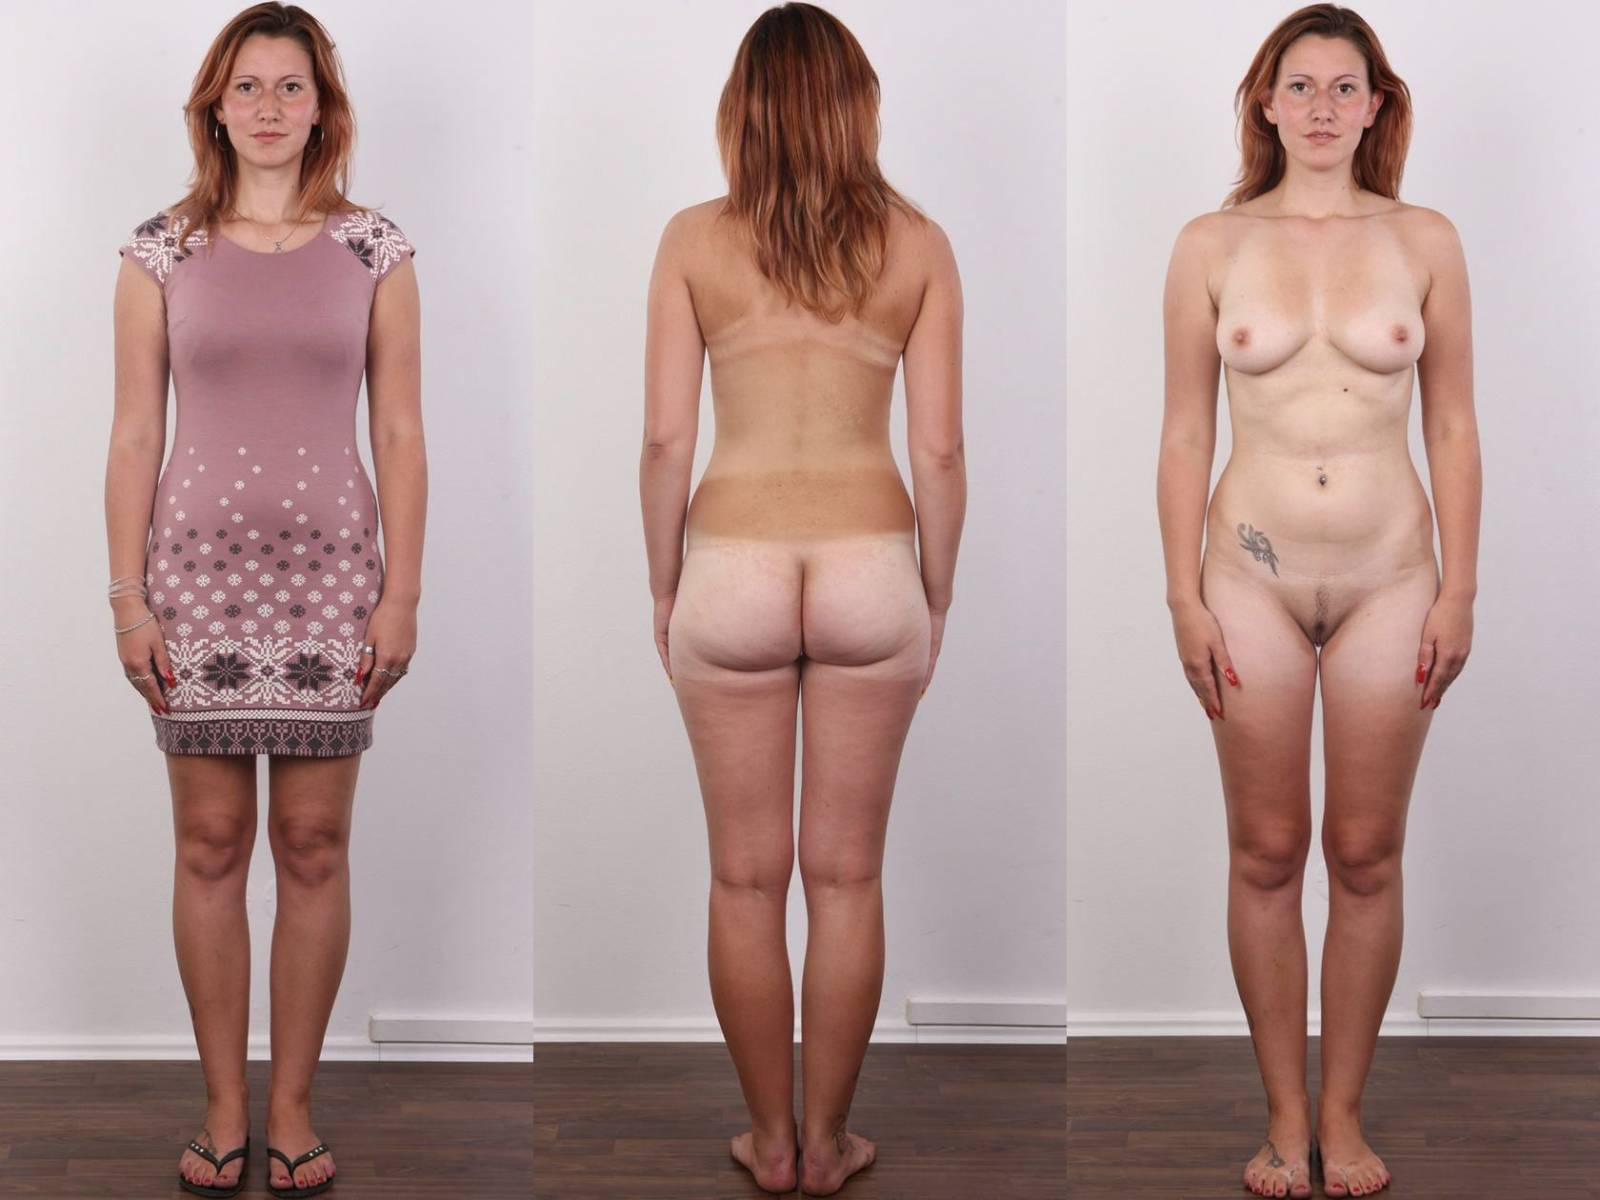 Women clothed and nude, michelle tucker xxx gif